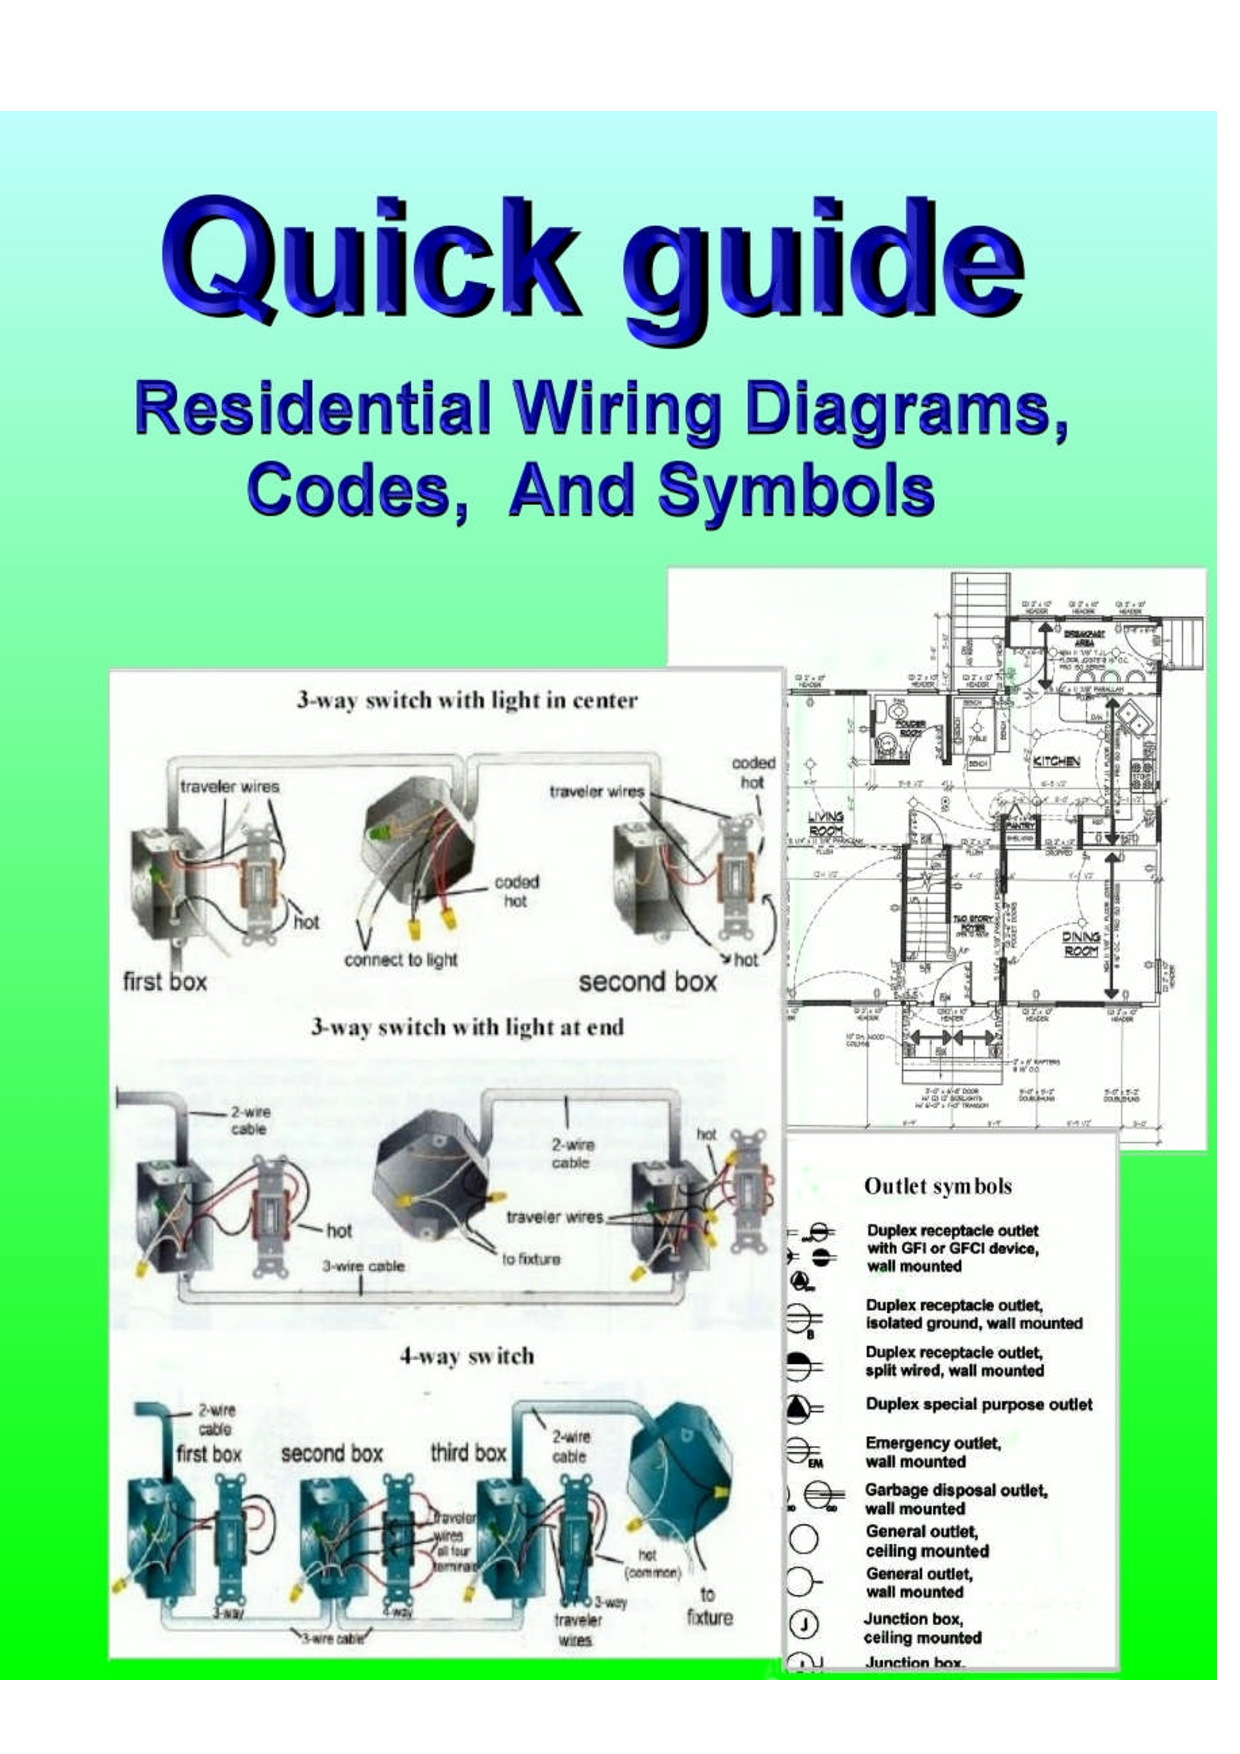 home electrical wiring diagrams pdf download legal documents 39 rh pinterest com Electrical Outlet Wiring Diagram Electrical Outlet Wiring Diagram